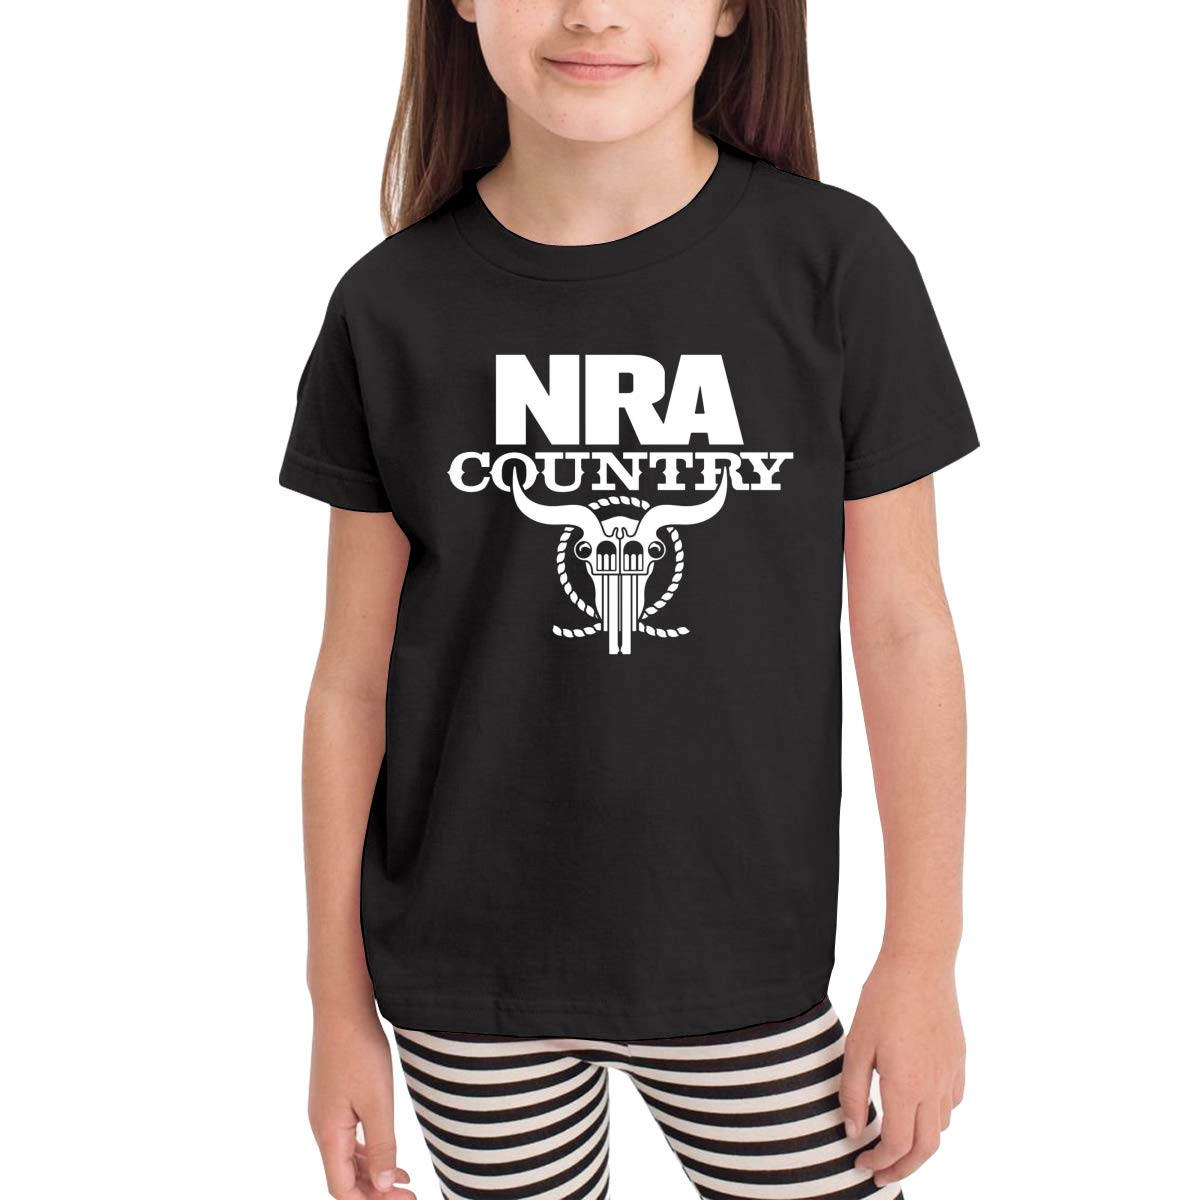 Kids T-Shirt Tops Black NRA Country Unisex Youths Short Sleeve T-Shirt